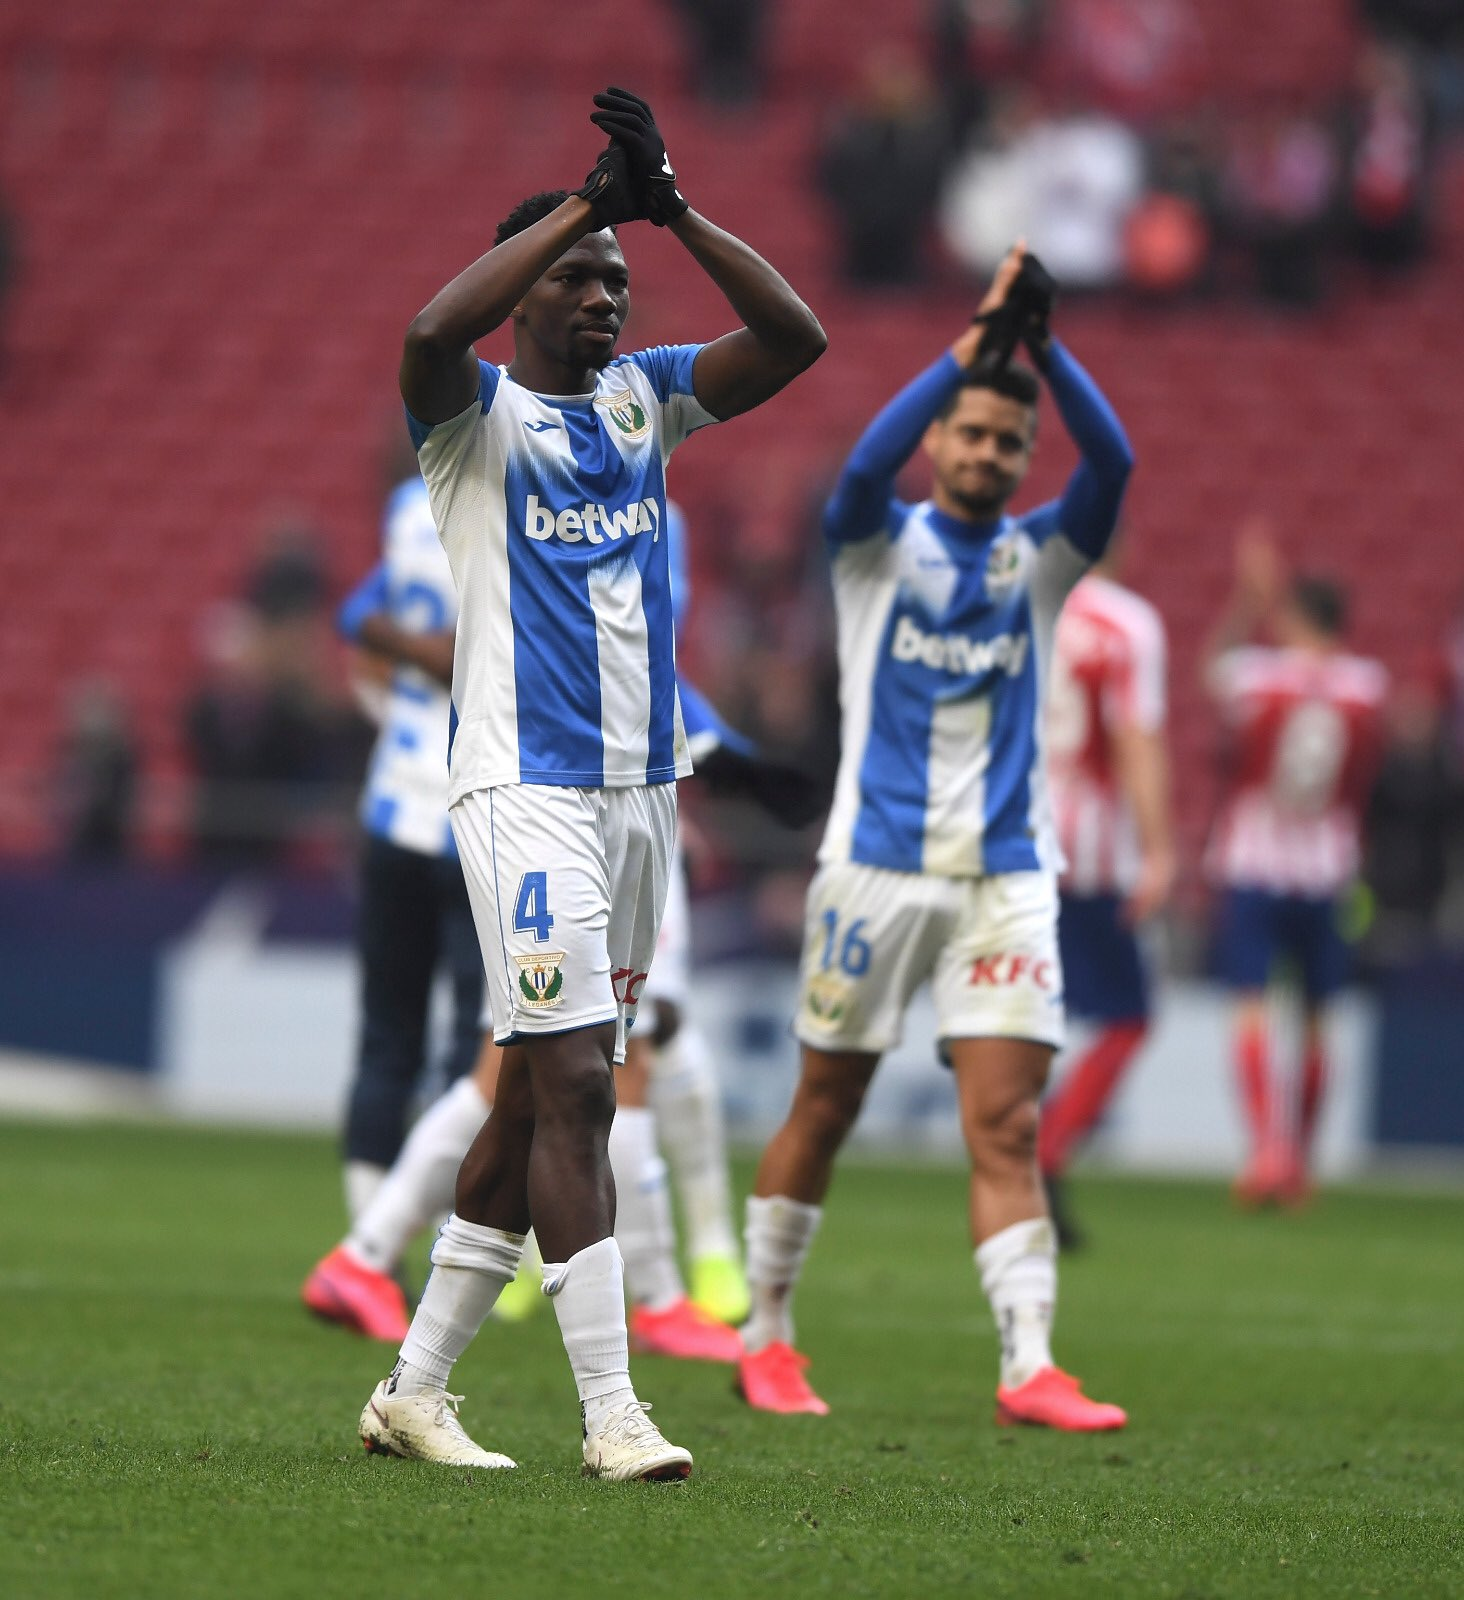 Omeruo, Awaziem Help Relegation Threatened Leganes Bag Draw At Atletico Madrid